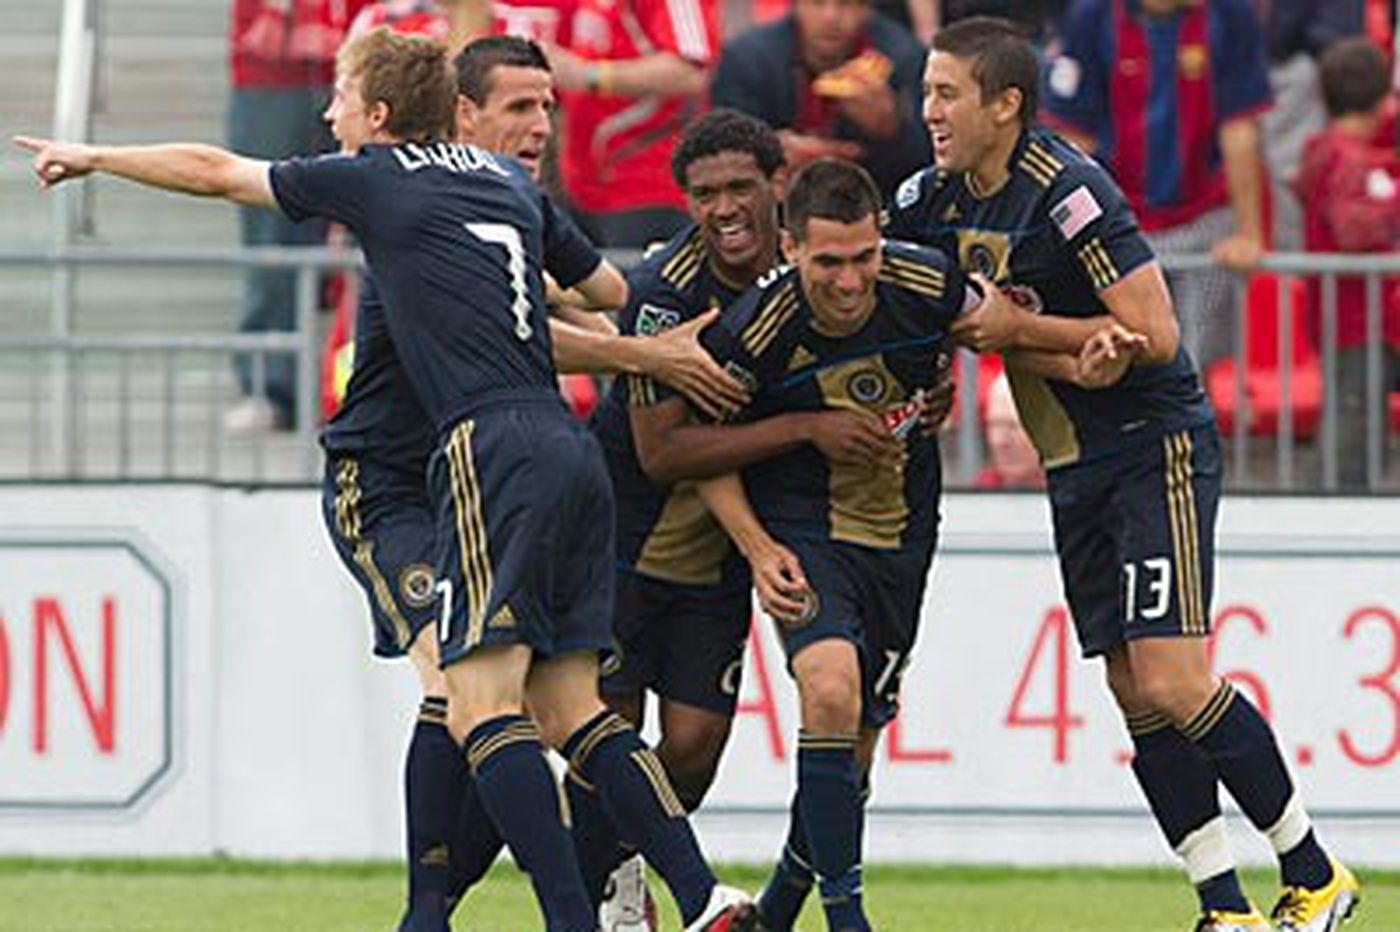 Despite six-goal game against Toronto, questions remain on Union's offense